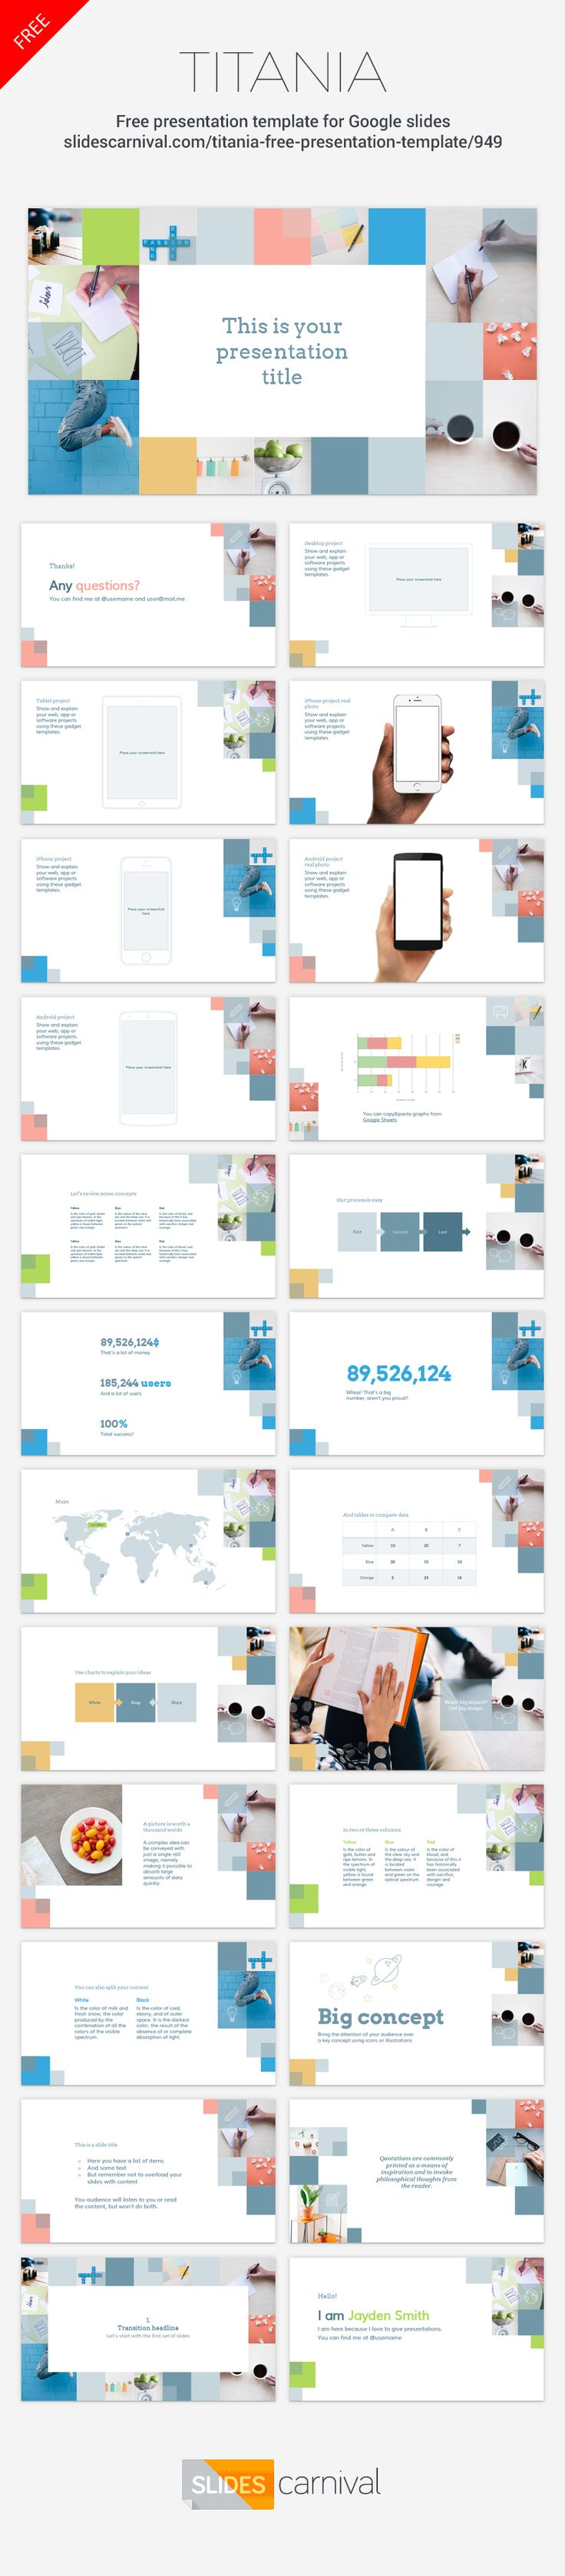 17 best images about presentation design inspiration positive colorful and professional this presentation template suits a great variety of topics works great for presentations that are going to be